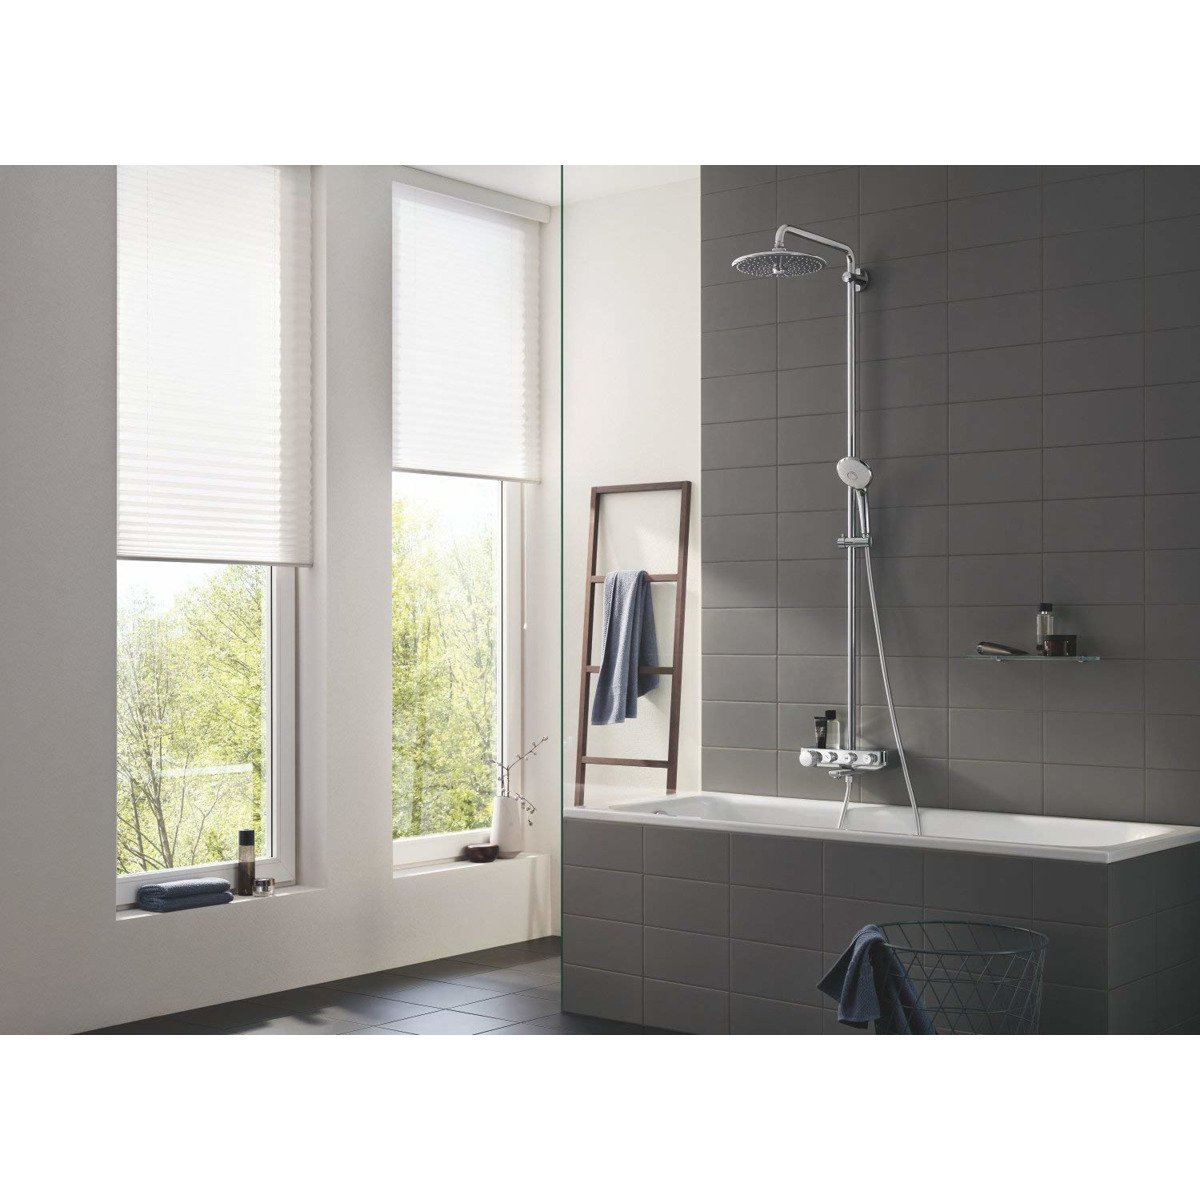 grohe euphoria smartcontrol 260 douchesysteem mono chroom 26510000. Black Bedroom Furniture Sets. Home Design Ideas